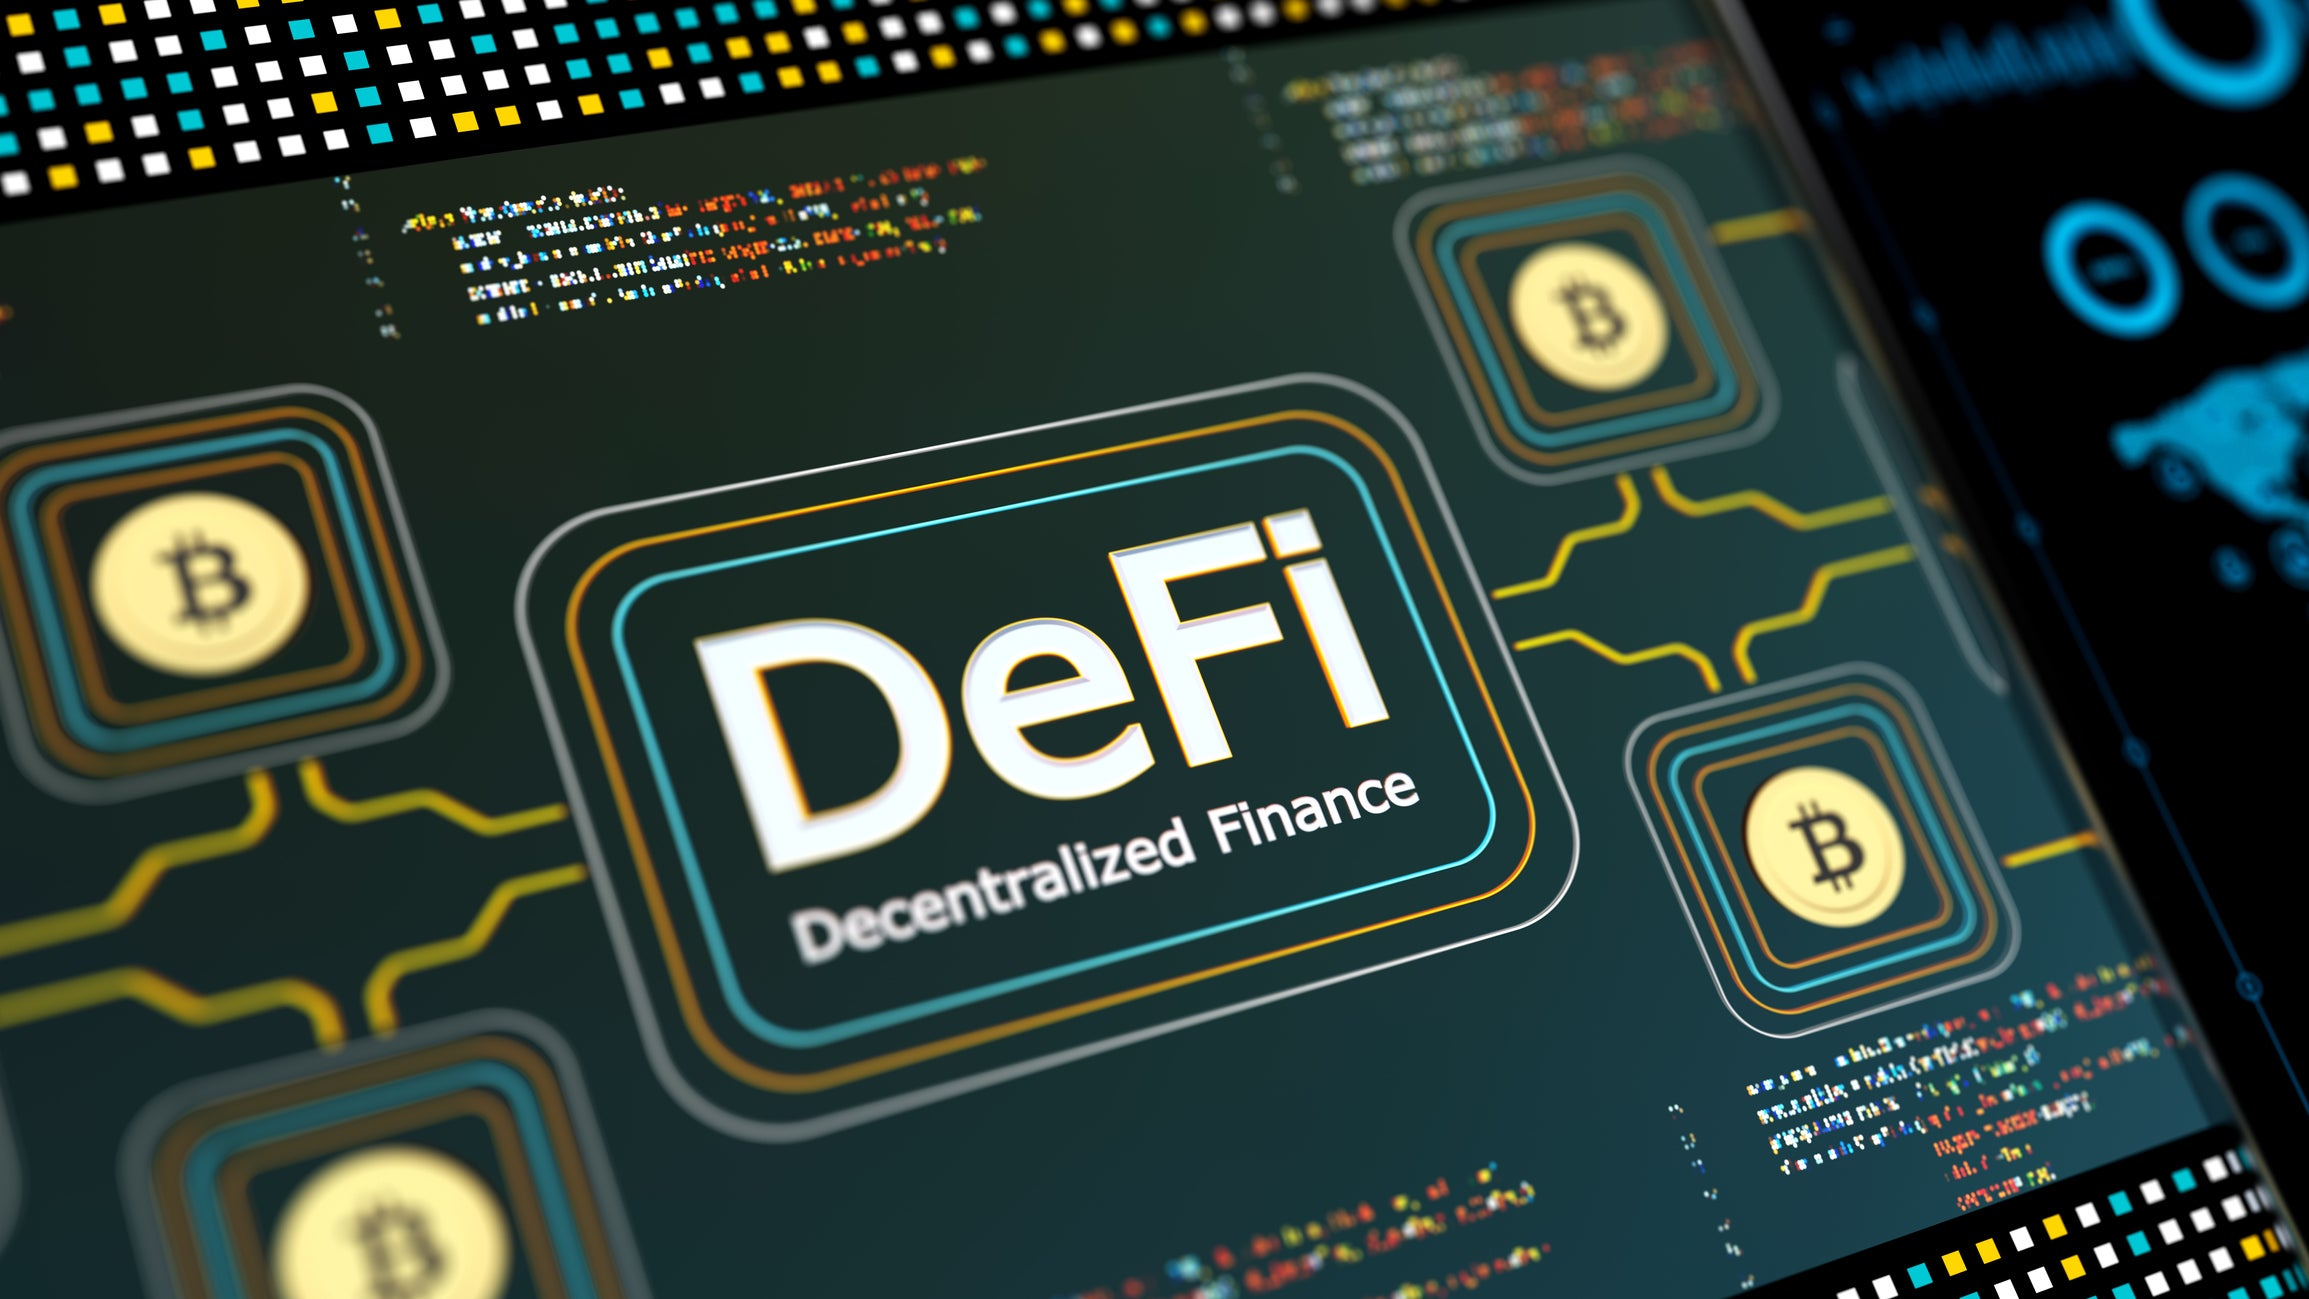 Square Wants in on the DeFi Boom